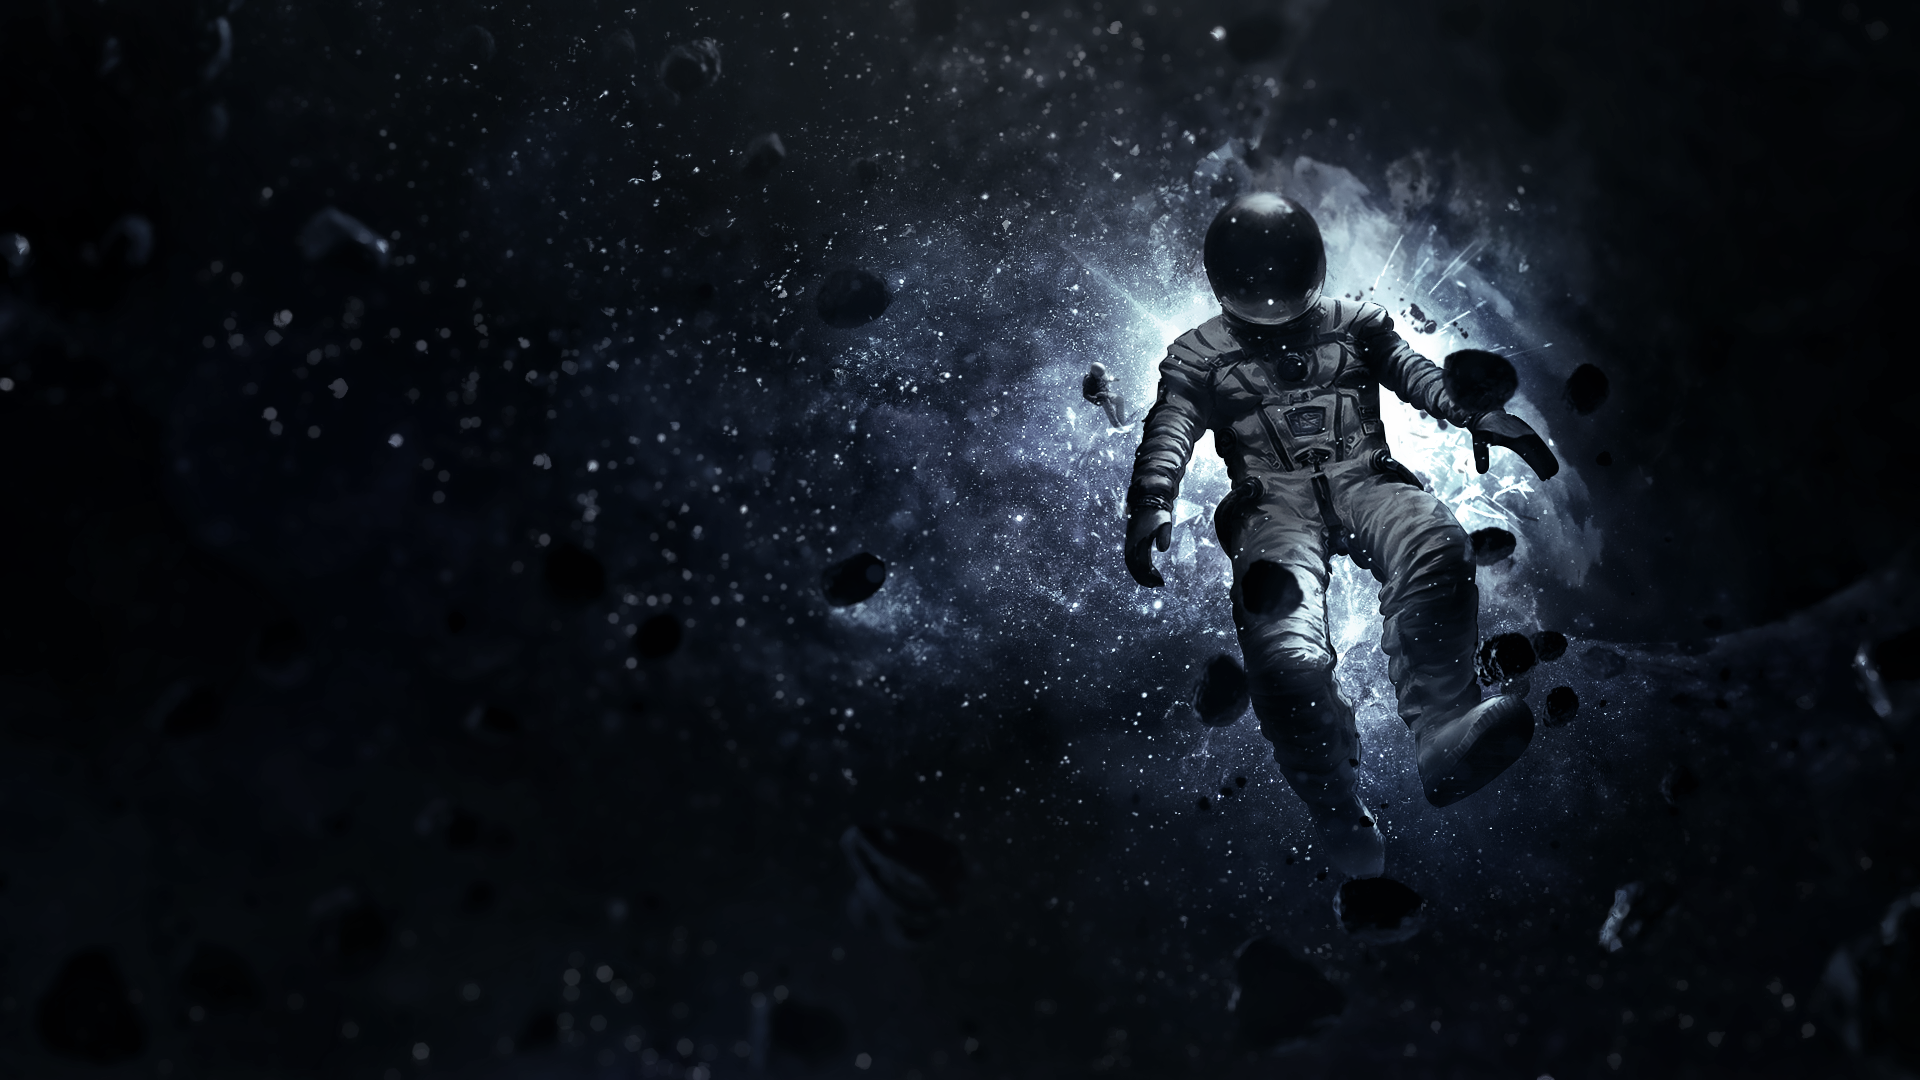 Awasome Space Astronaut Wallpapers   Top Awasome Space 1920x1080